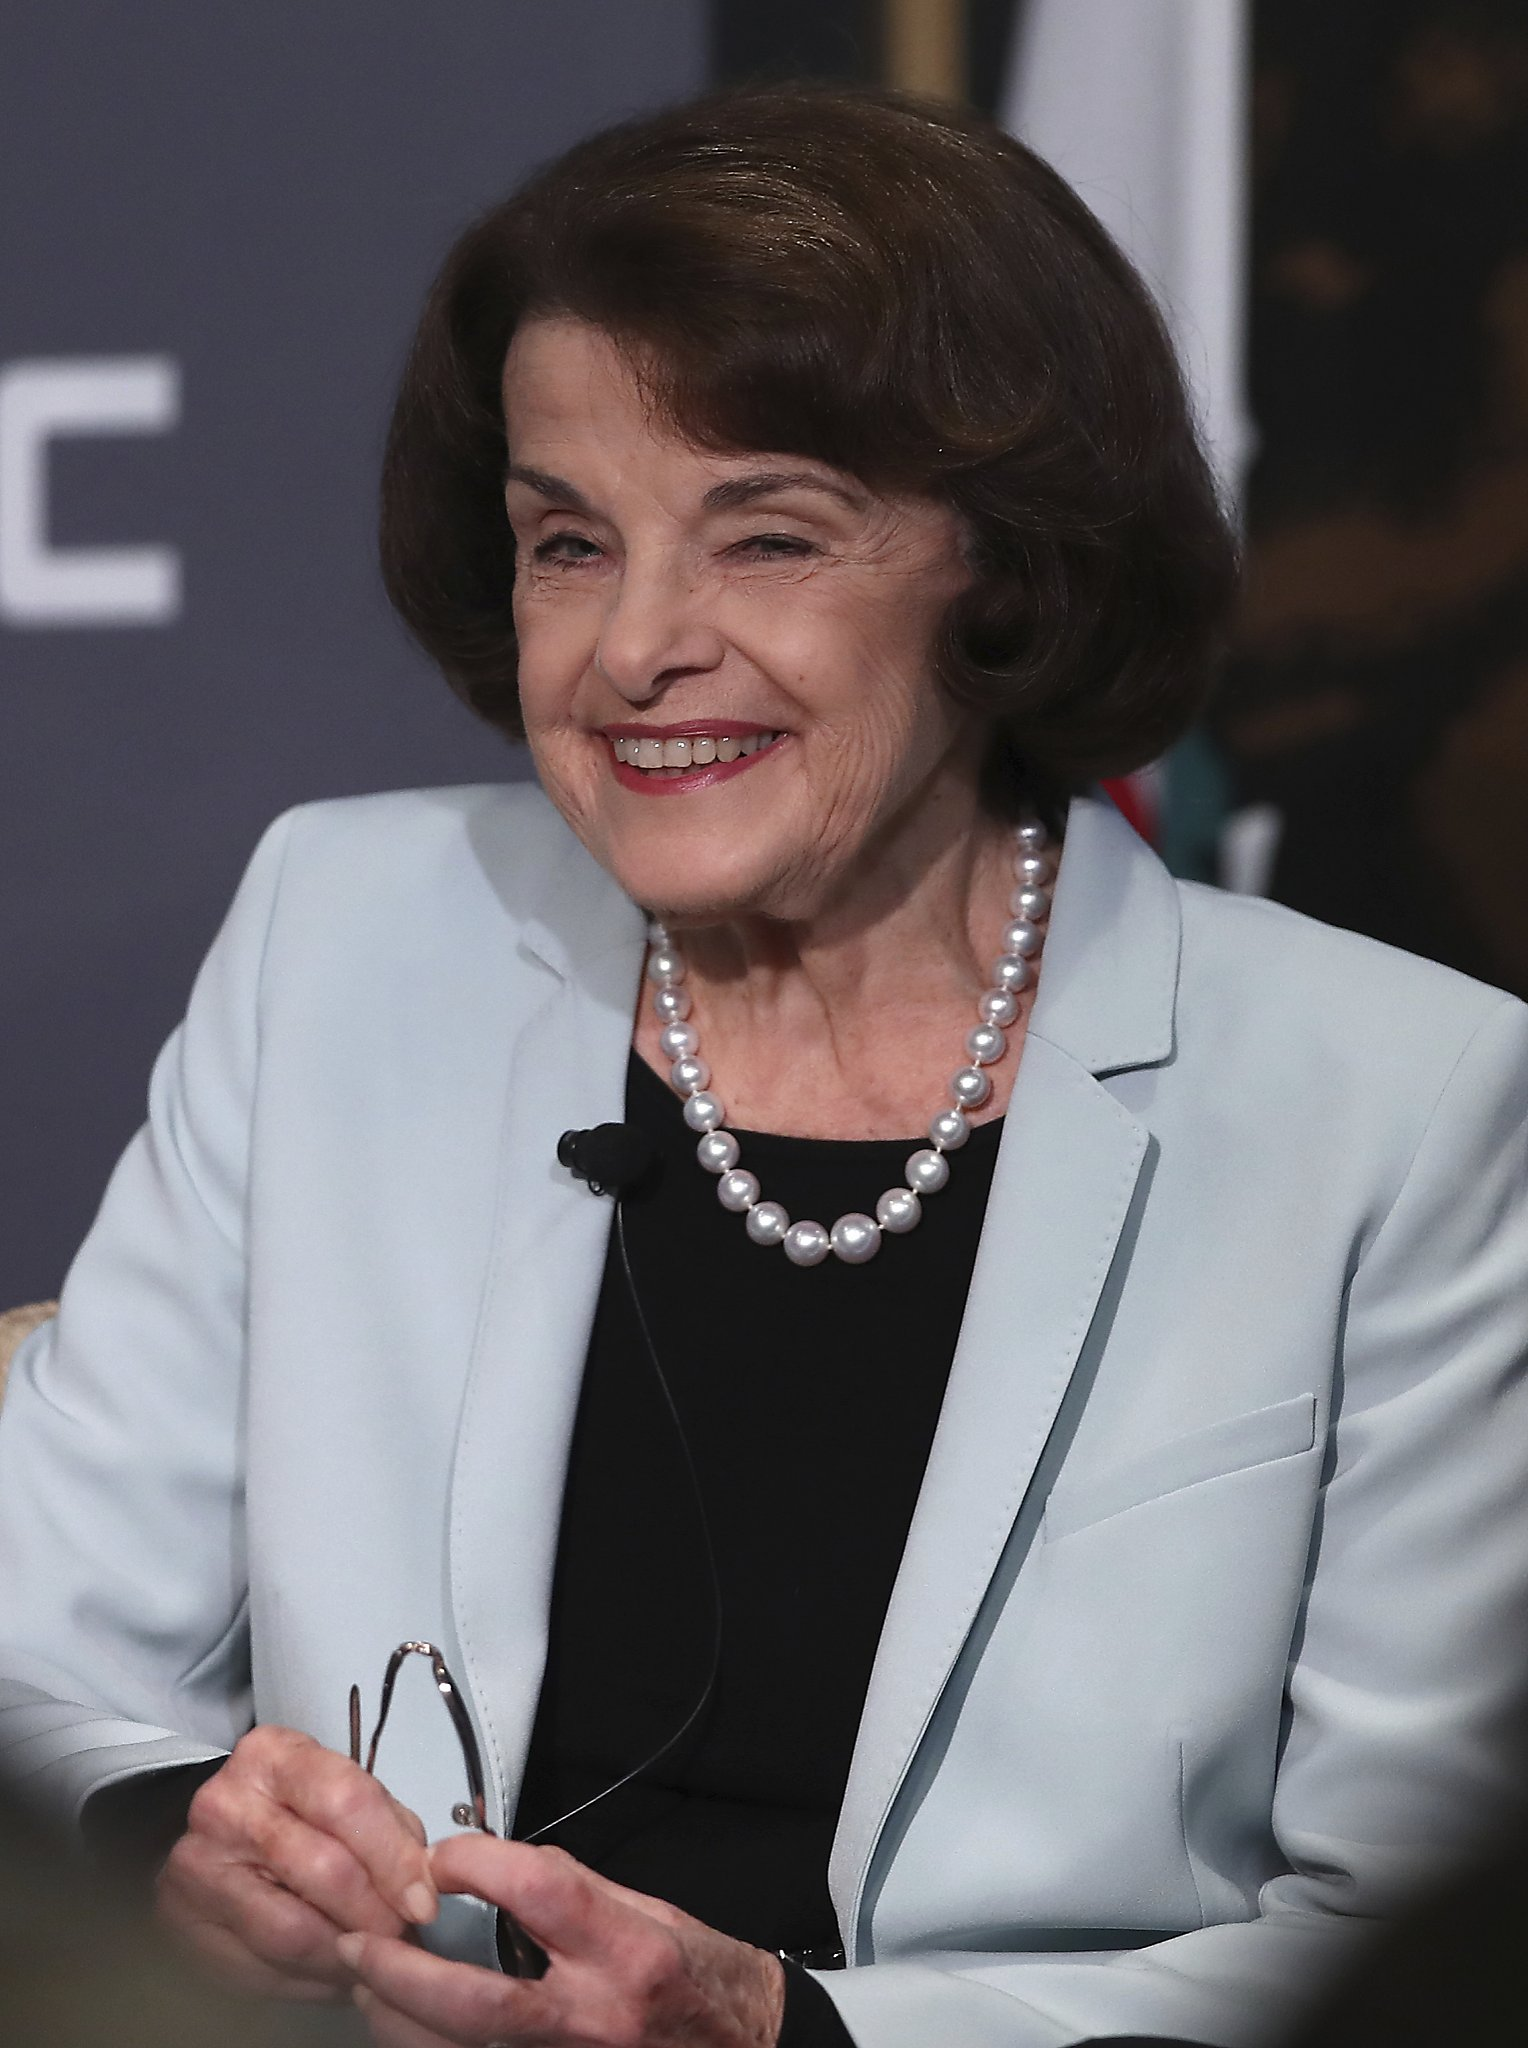 dianne feinstein gavin newsom rolling over ca election foes in new poll sfchronicle com dianne feinstein gavin newsom rolling